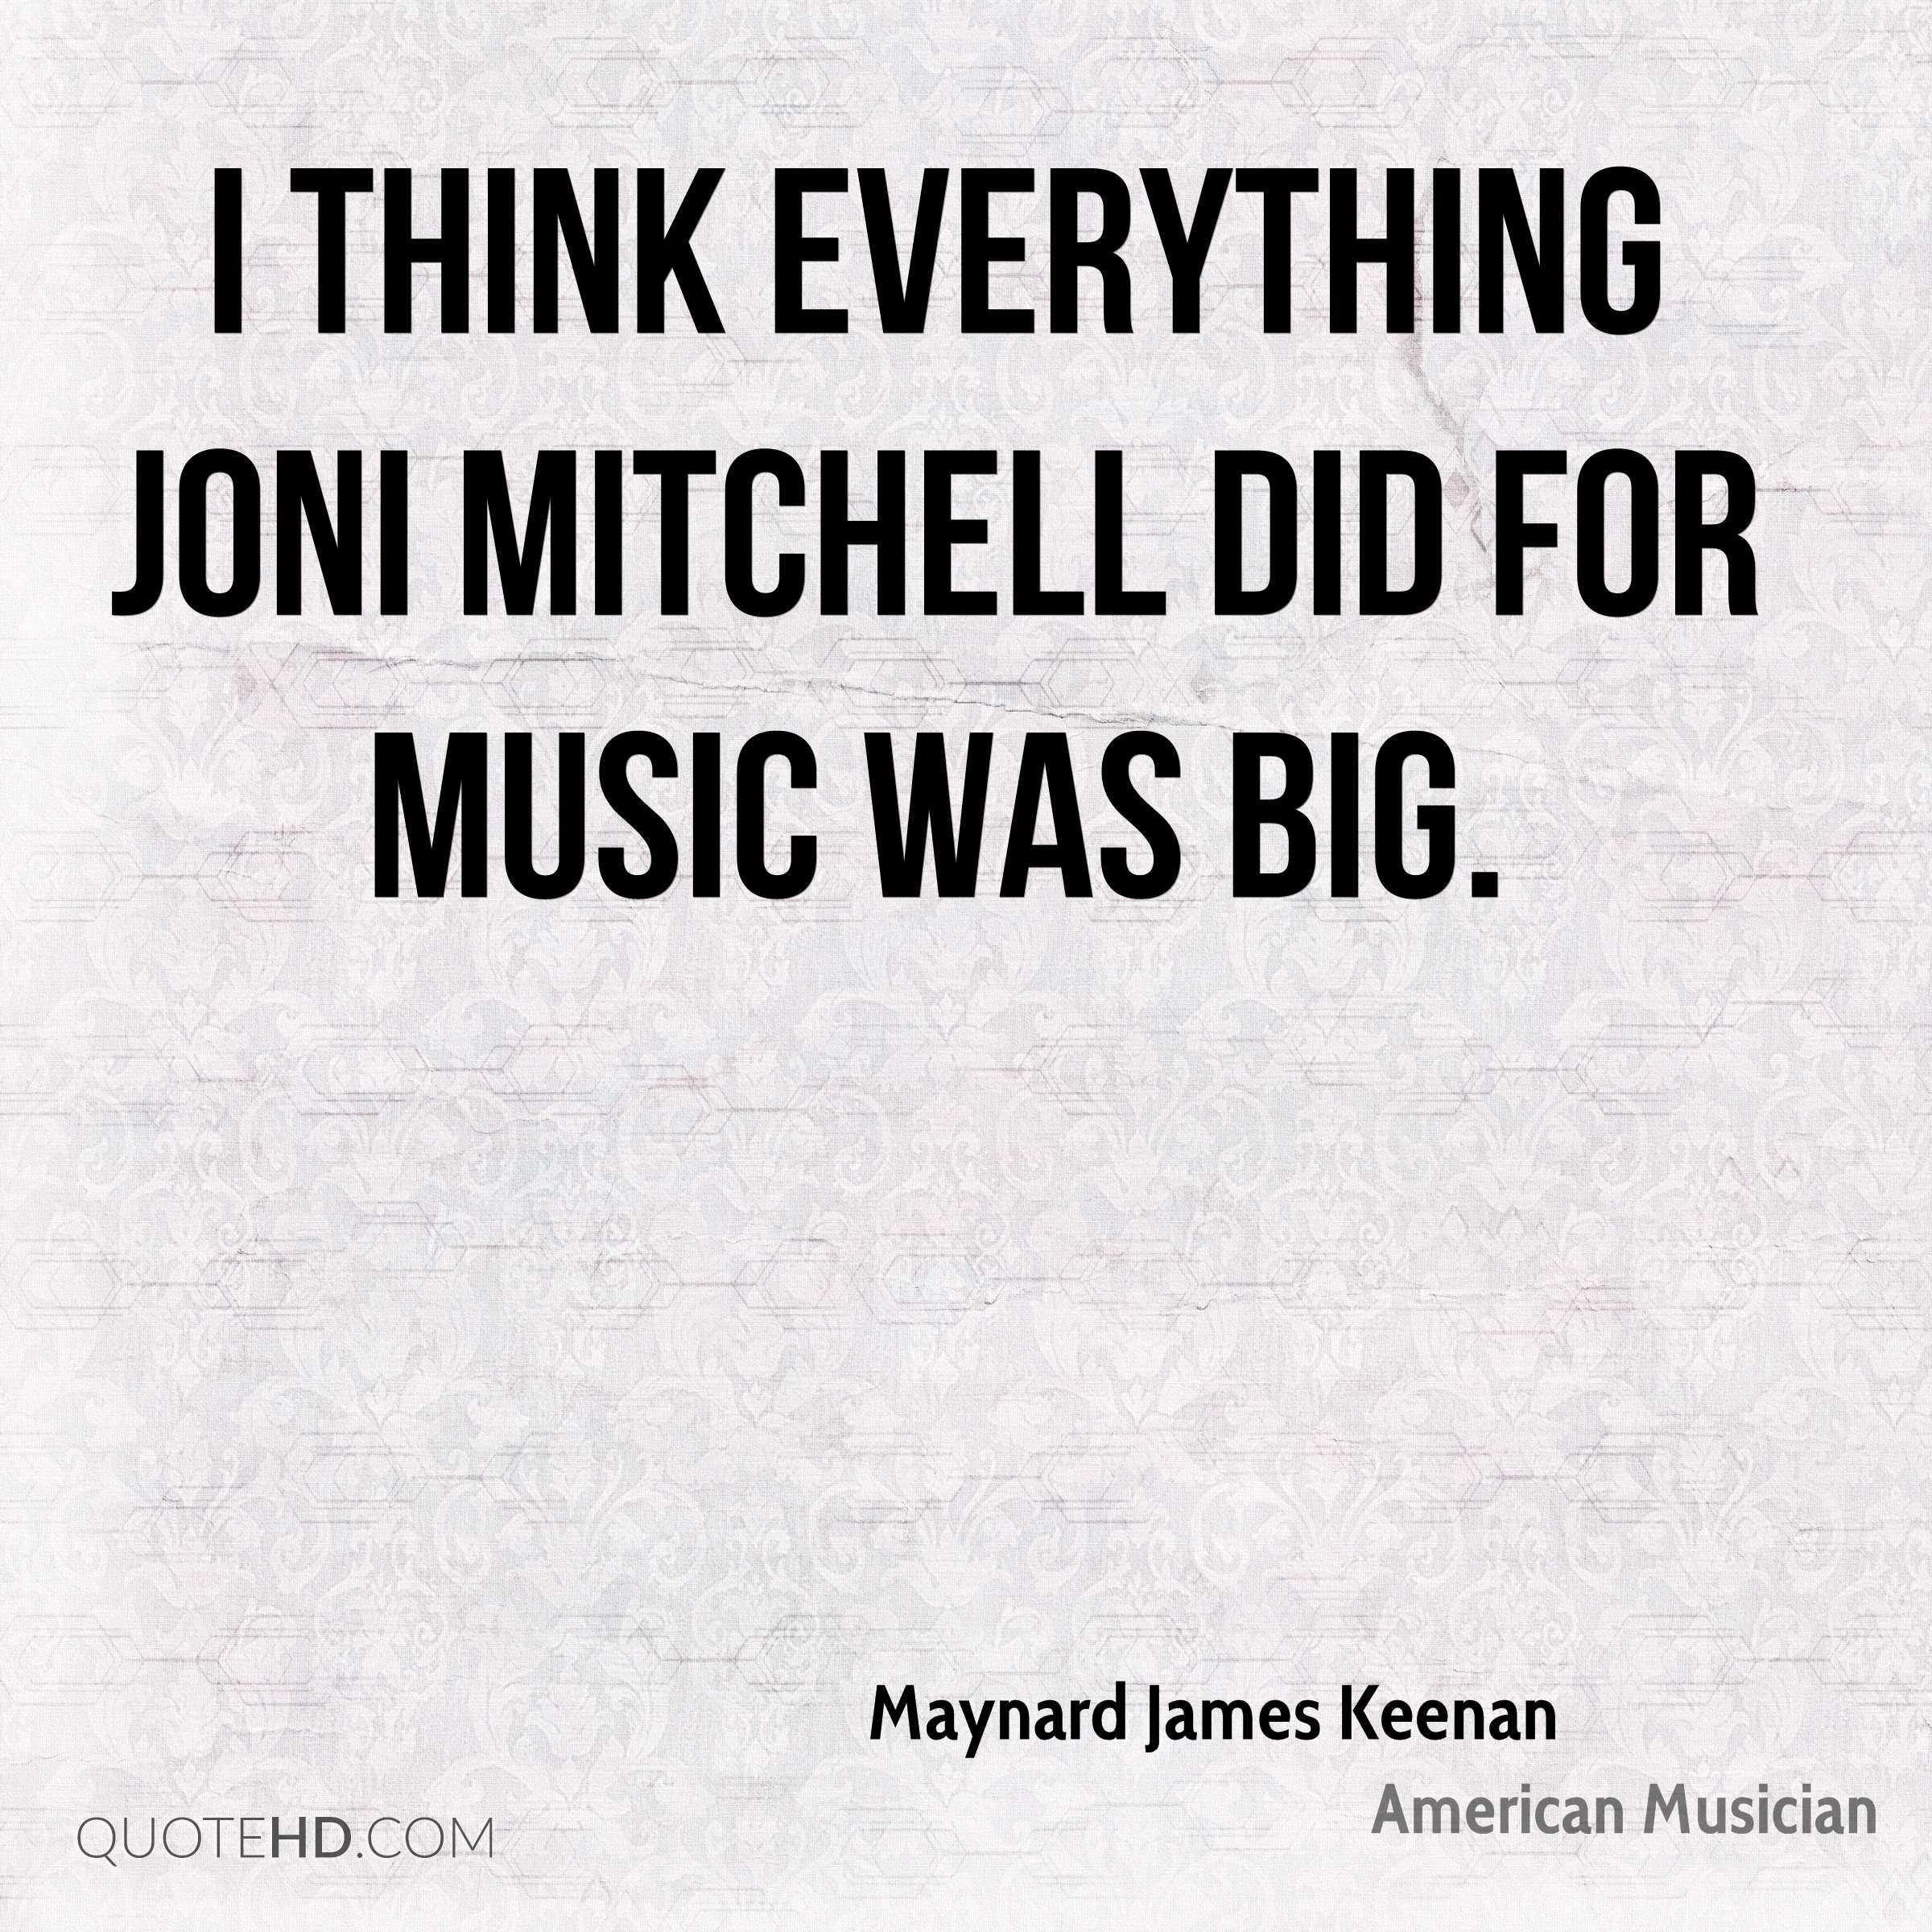 I think everything Joni Mitchell did for music was big.